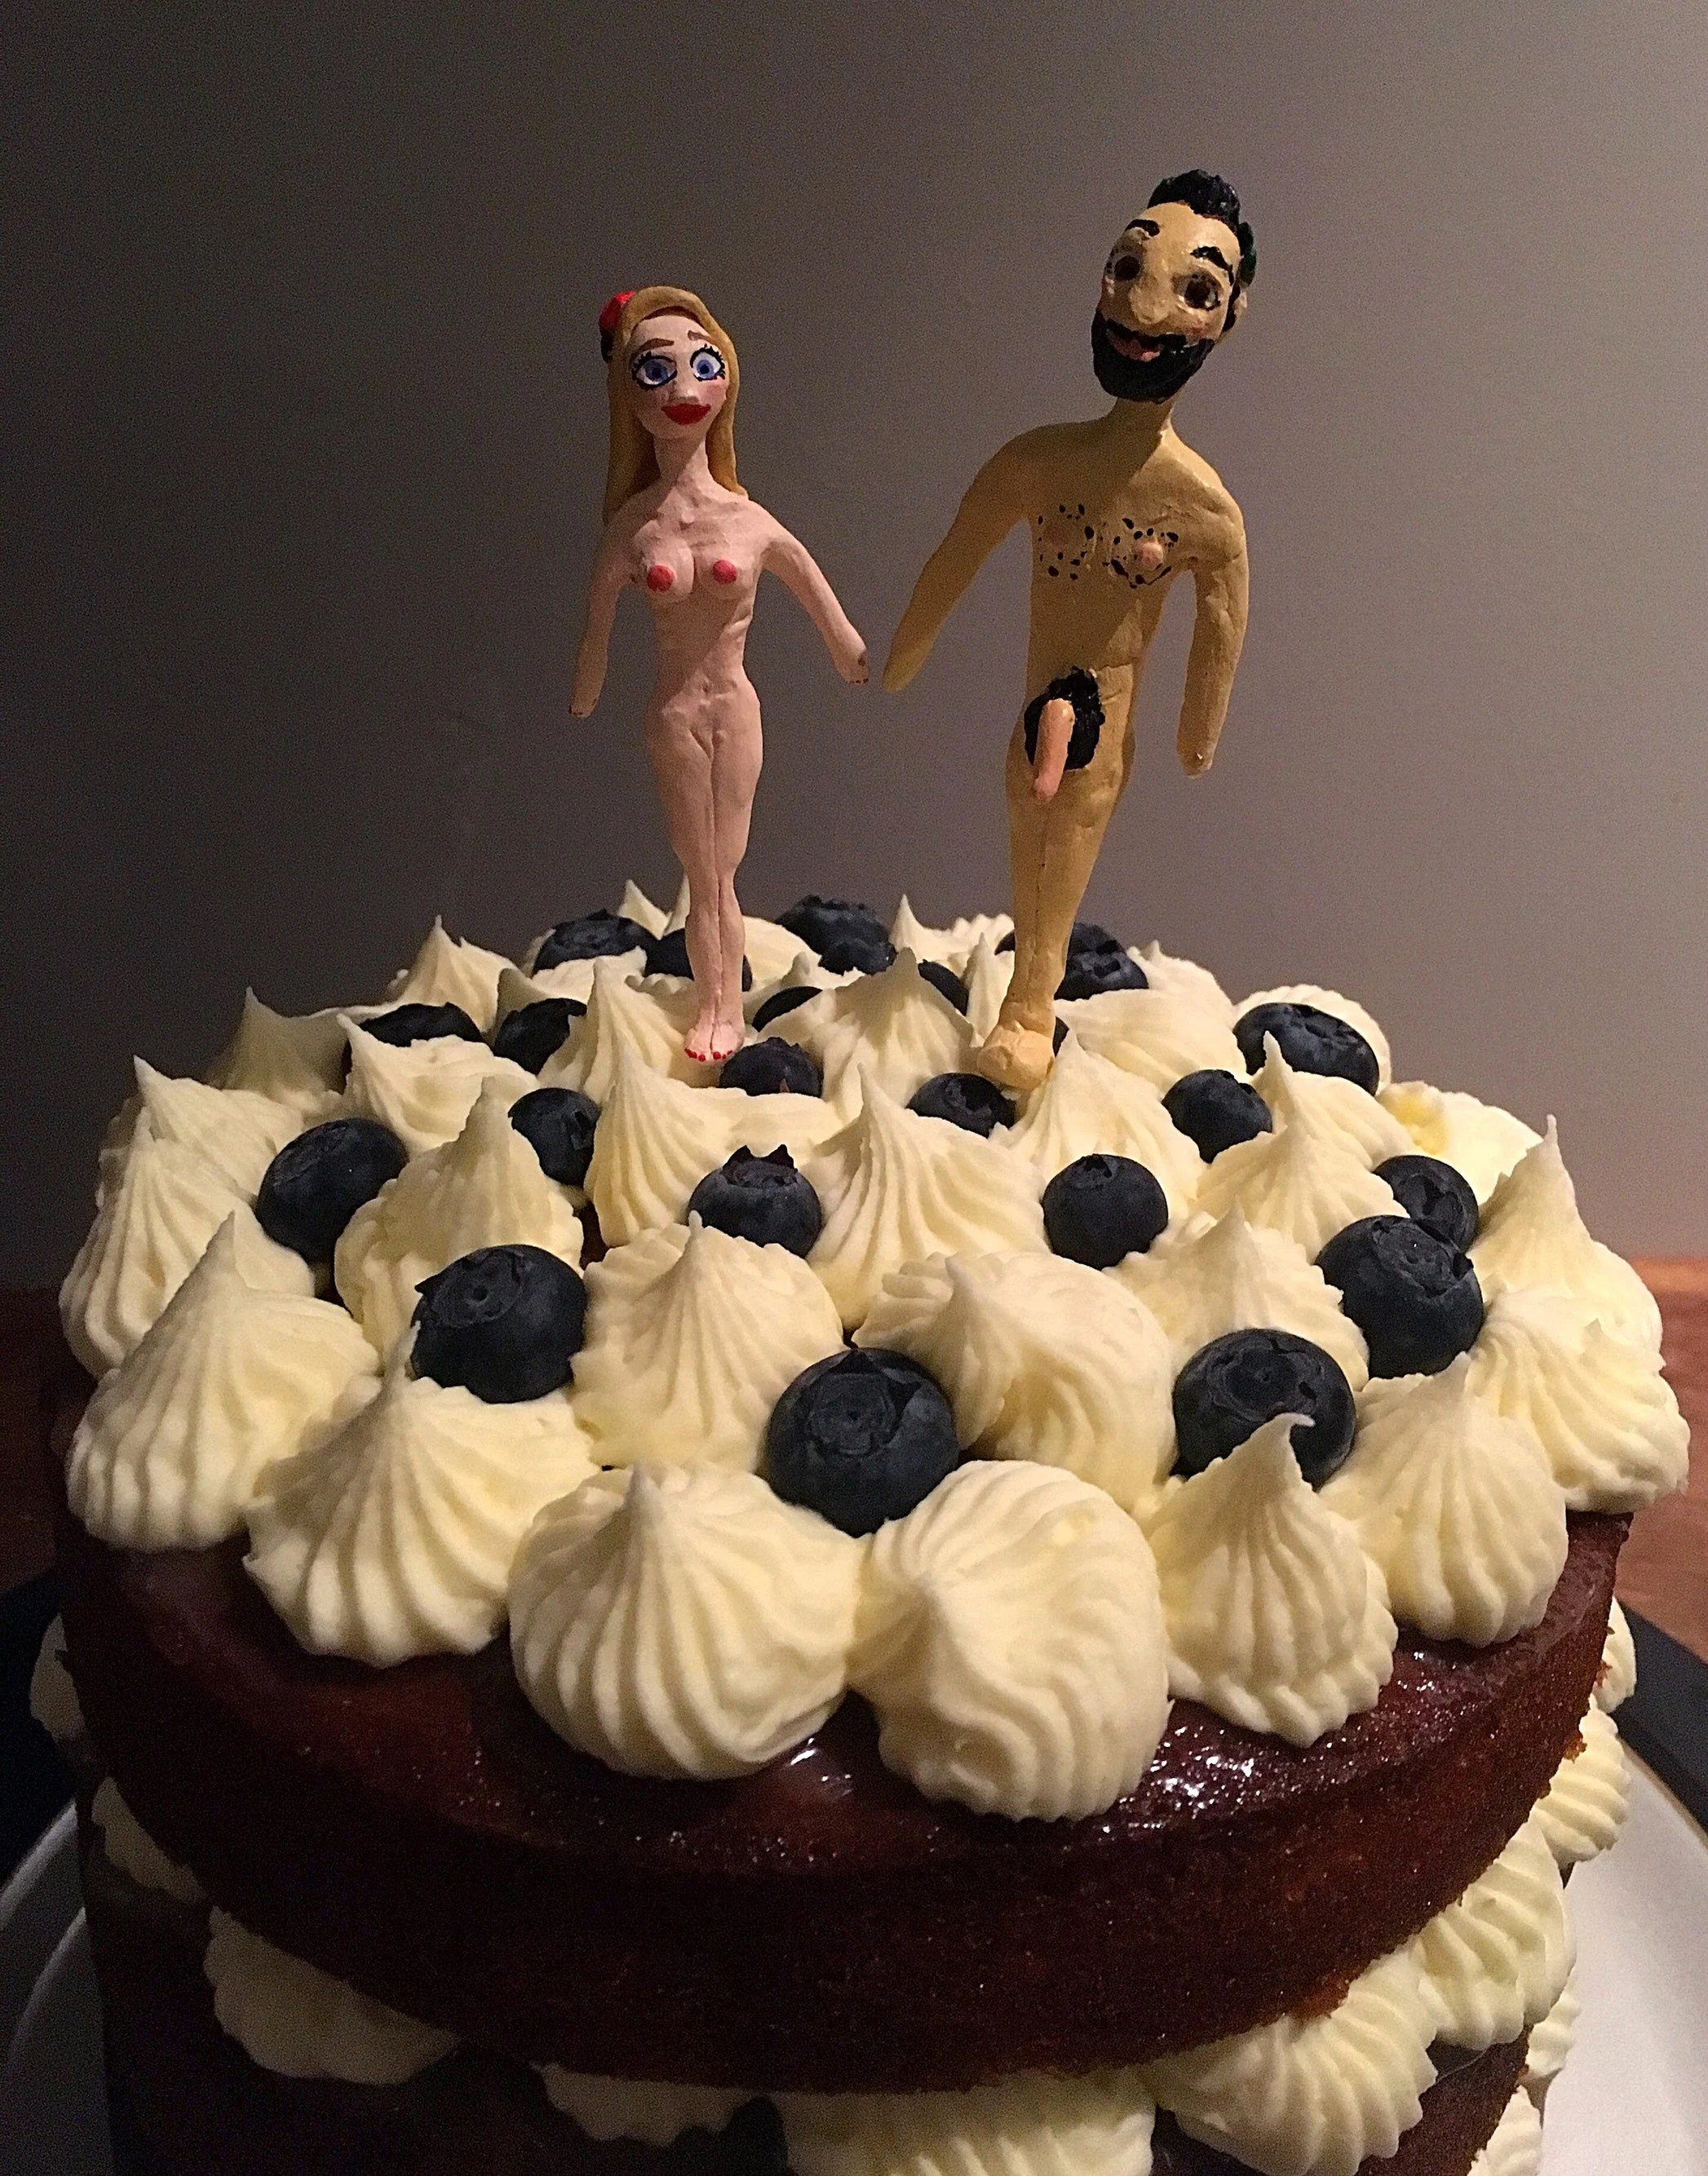 Wedding cake toppers   Etsy Custom made nude wedding cake toppers  naked cake toppers of the couple   Quirky cake toppers  custom portrait cake toppers